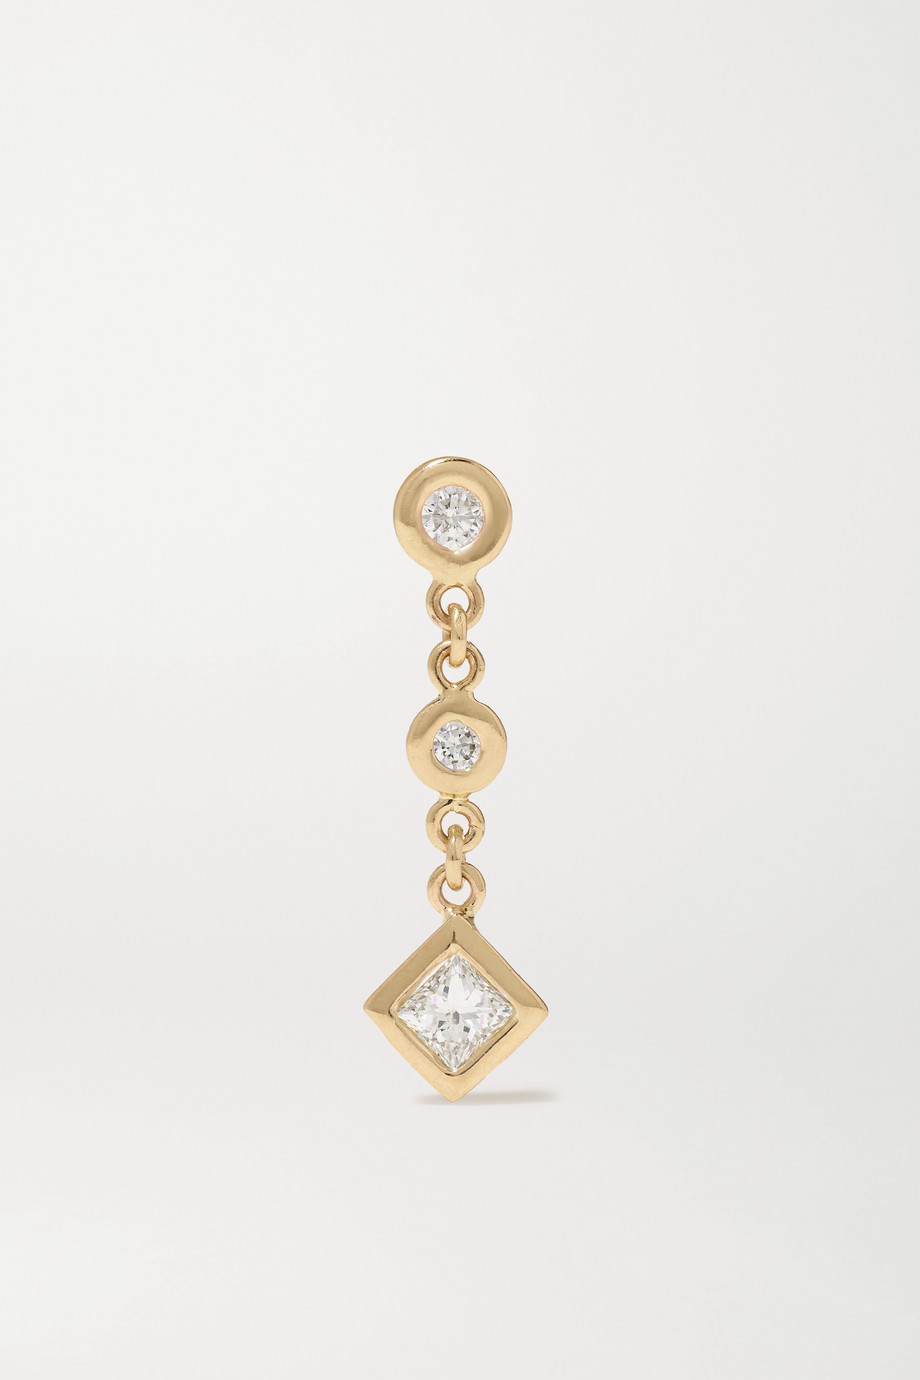 JACQUIE AICHE 14-karat gold diamond earring